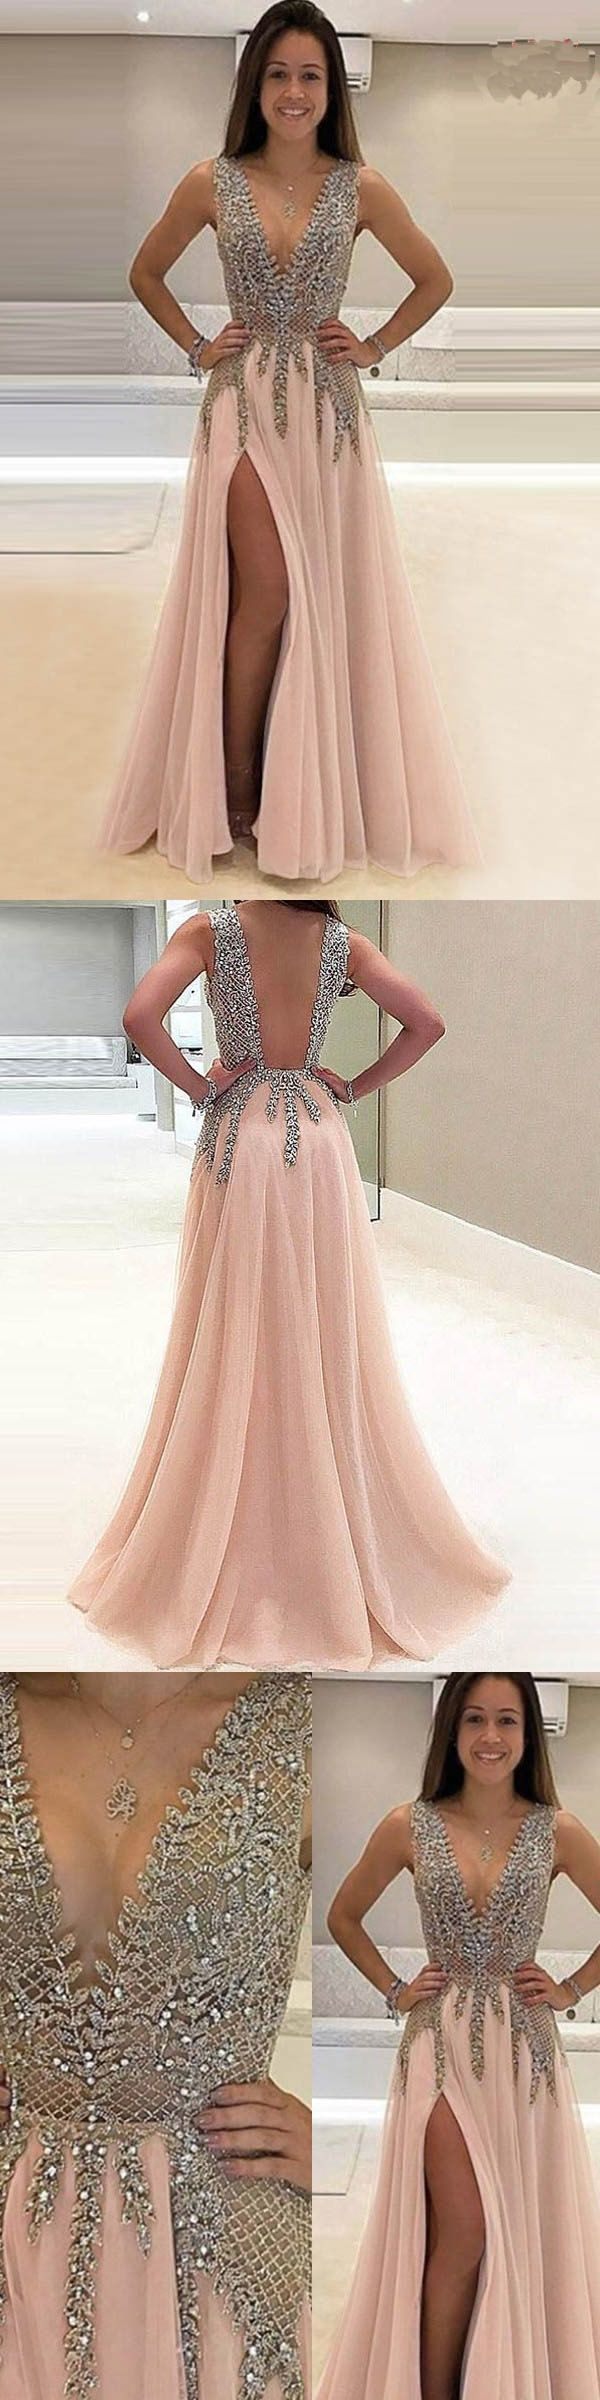 Hot sale nice prom dresses pink deep vneck sweep train sleeveless